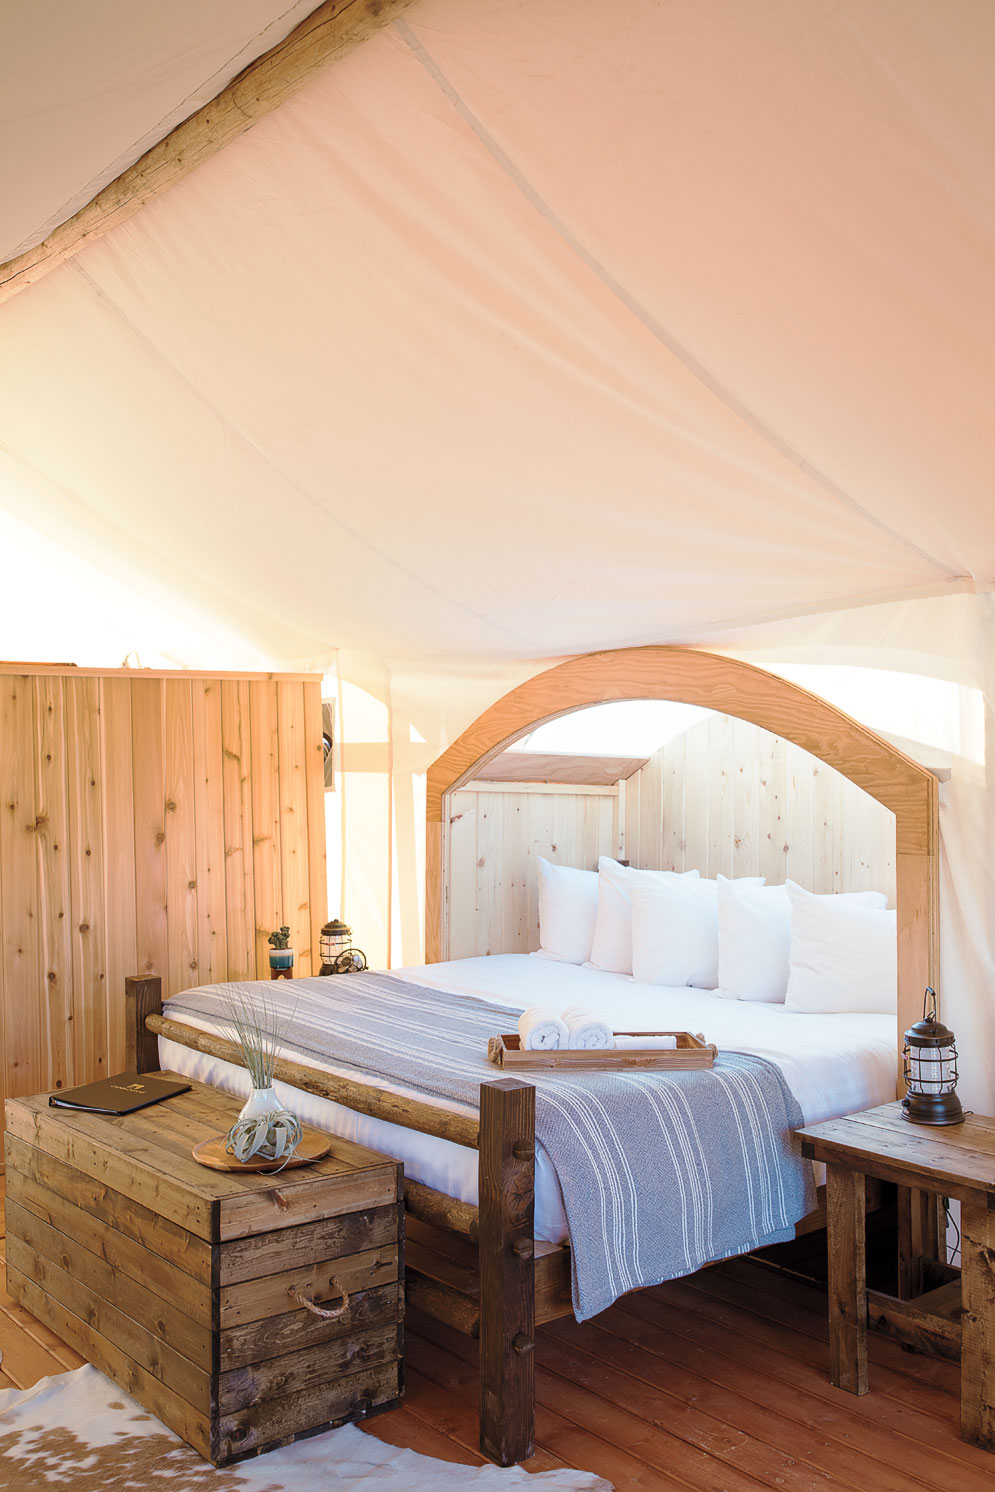 Under Canvas Zion Glamping Tent